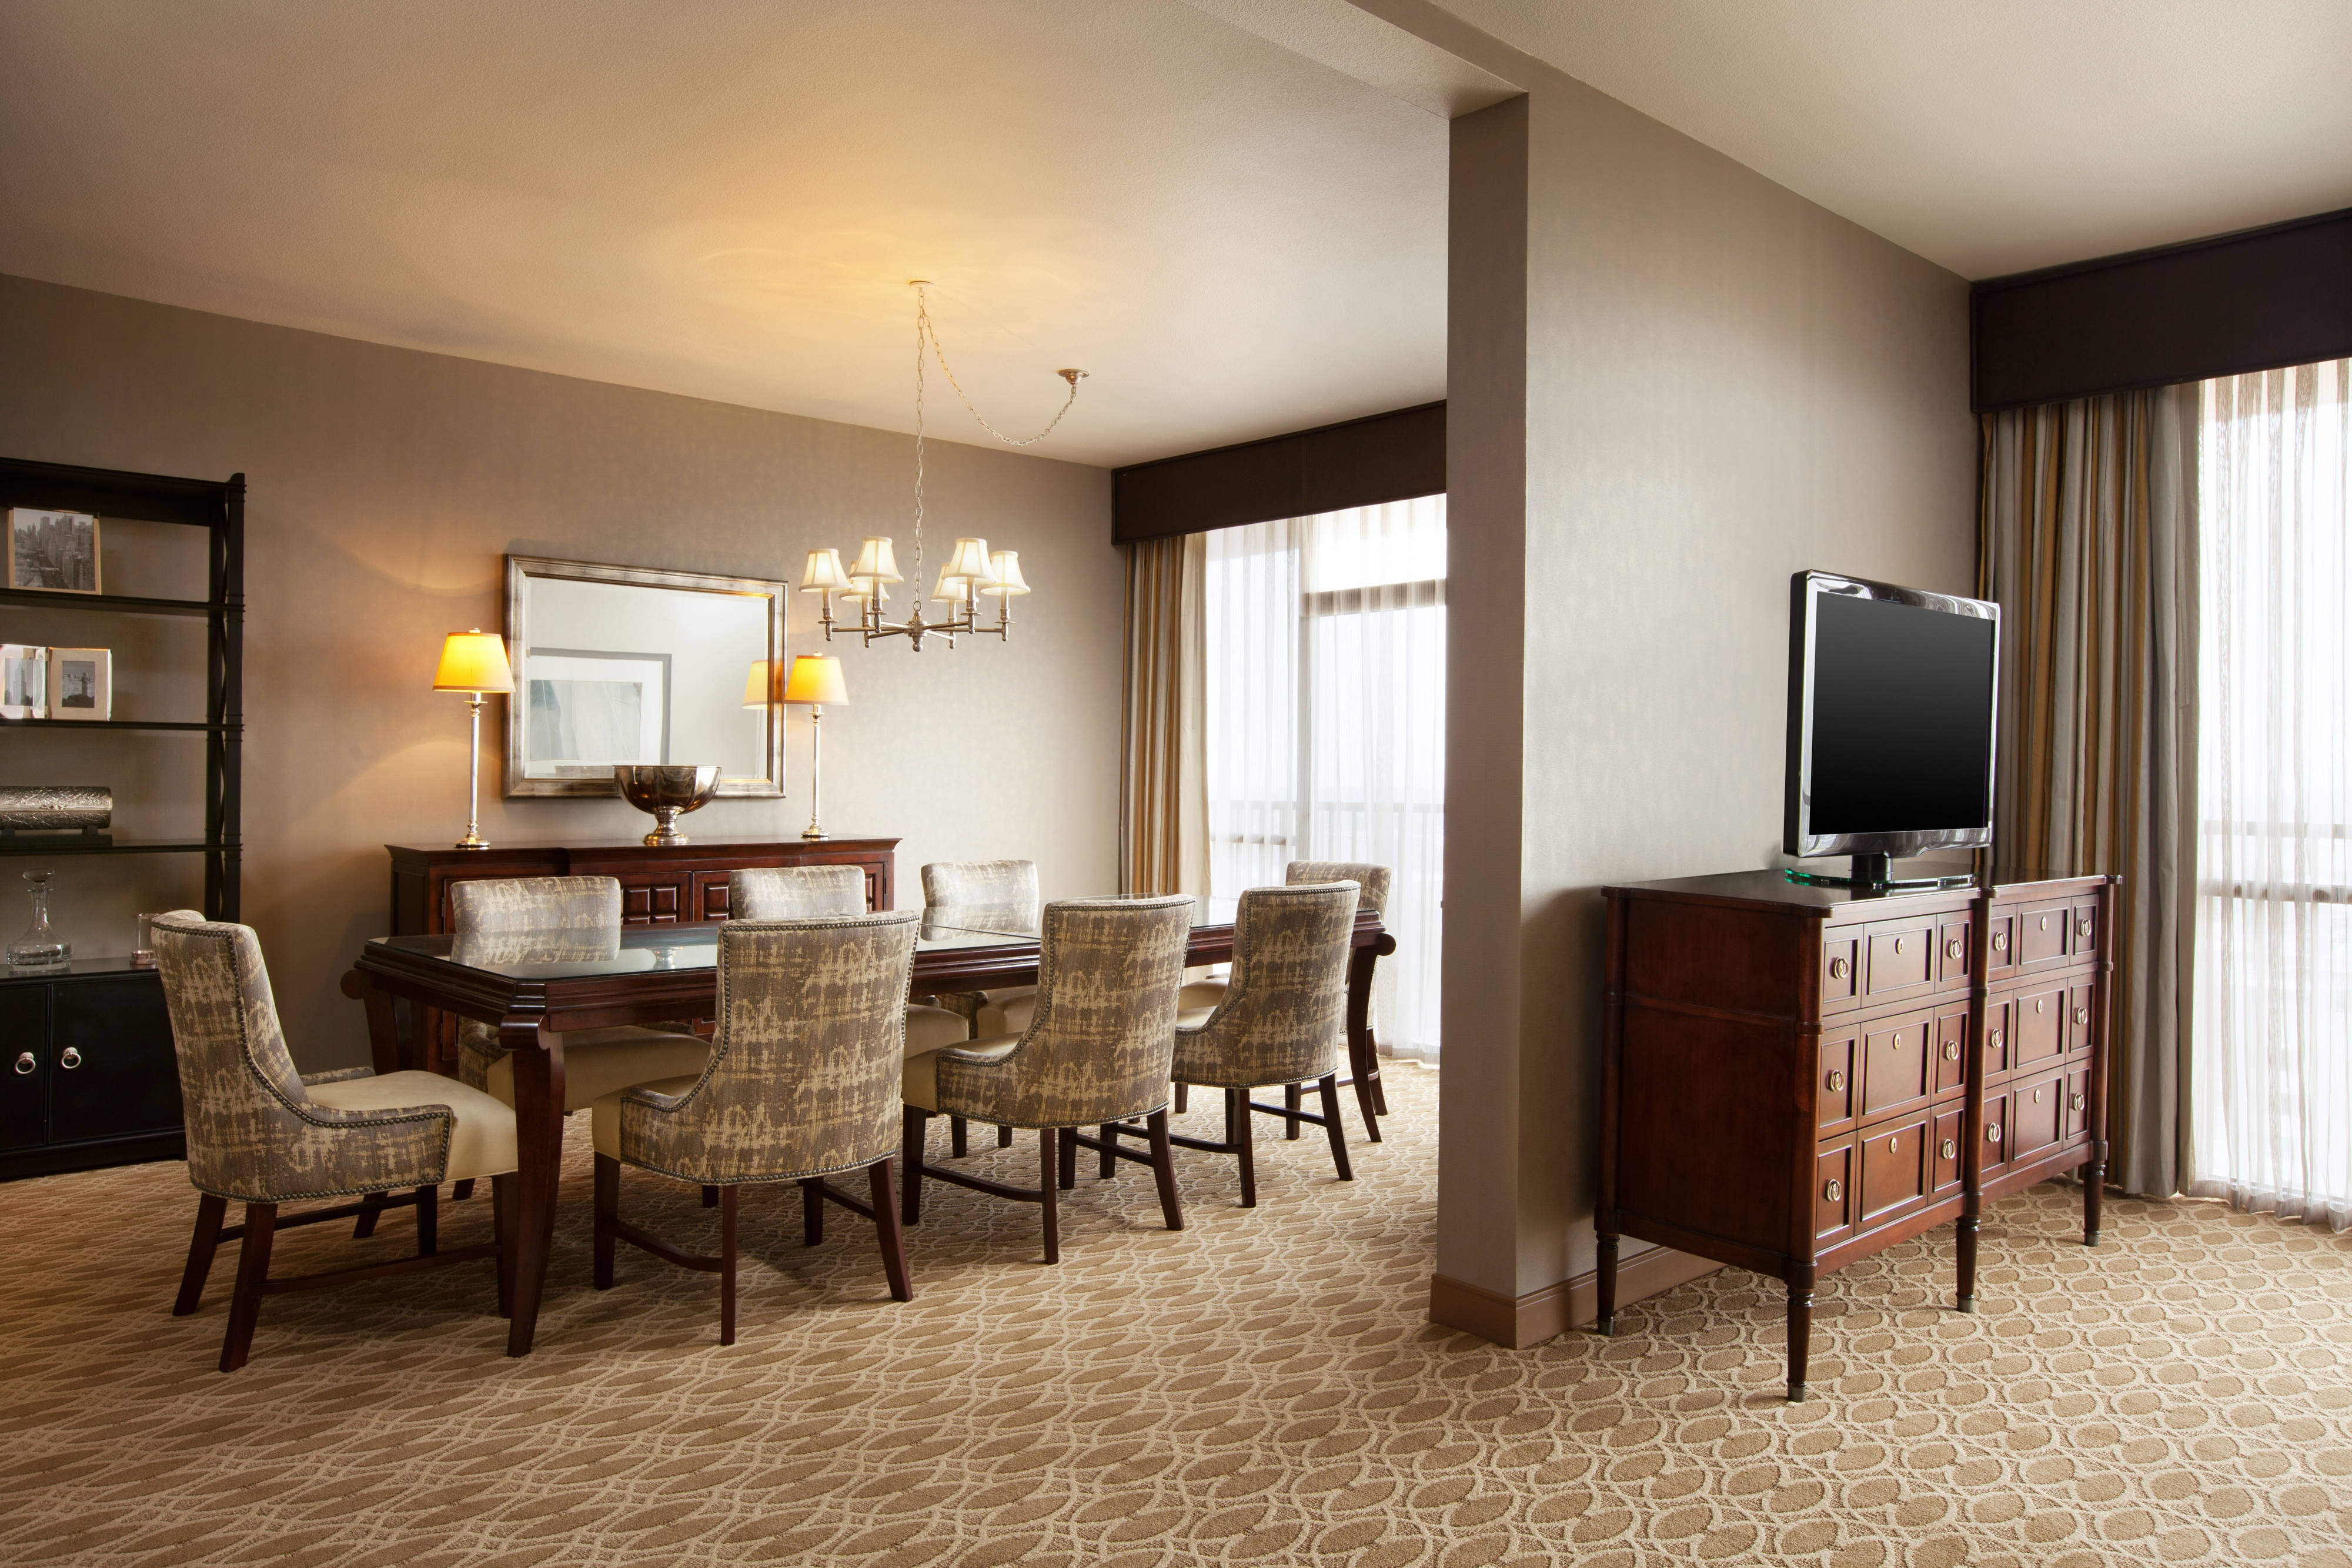 Suite - Dining Space